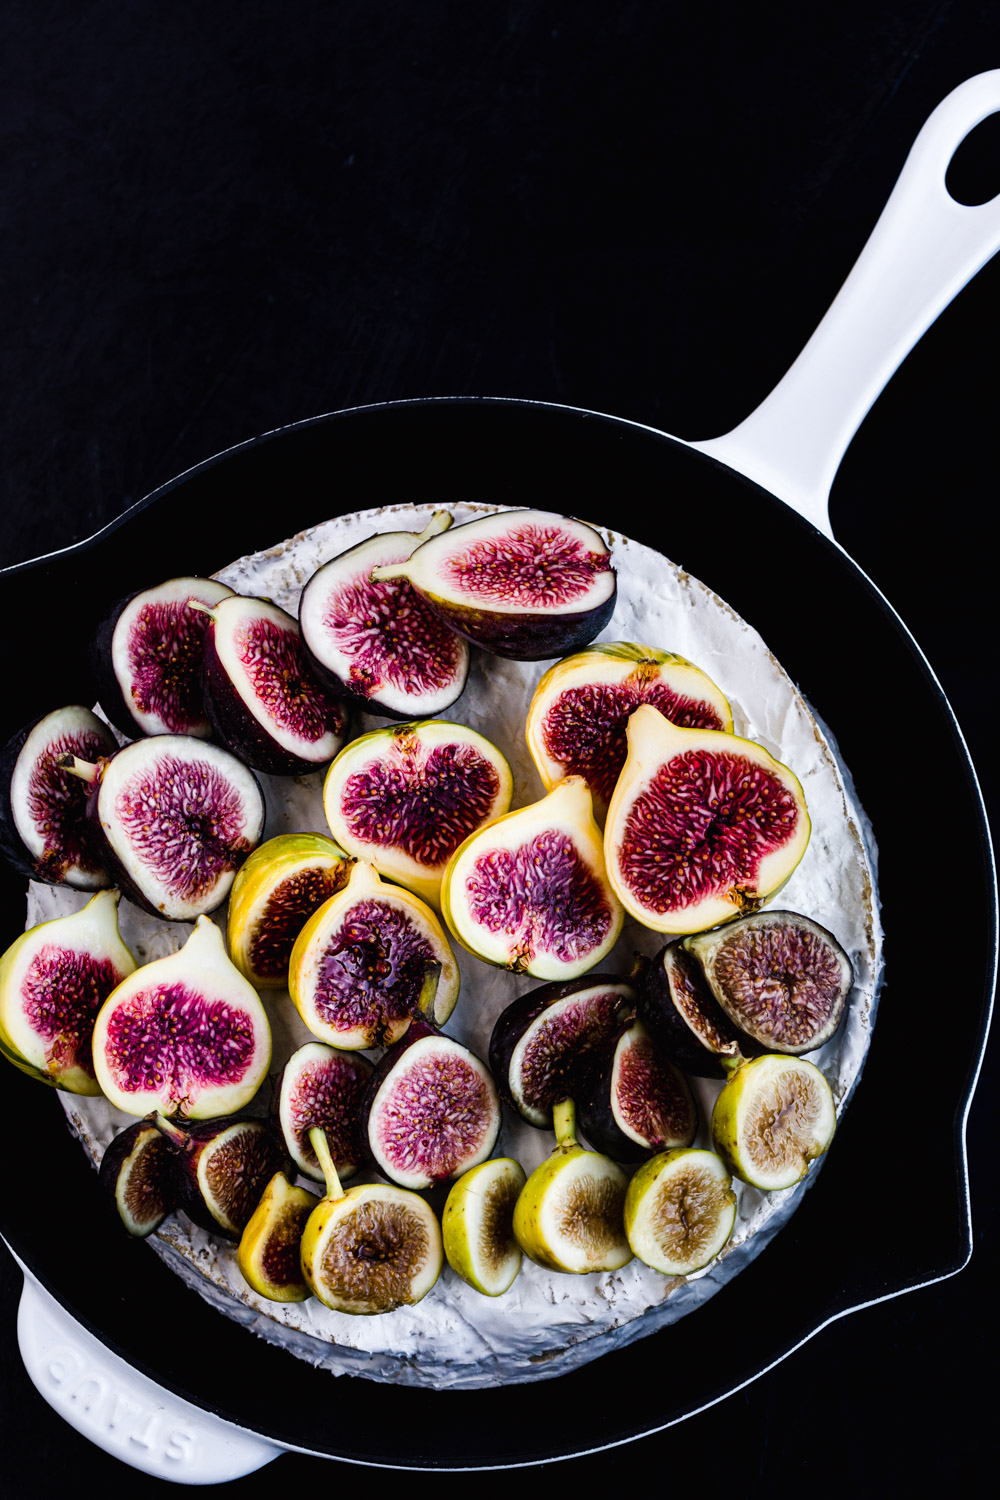 Brie in a baking dish with figs cut in half on top.